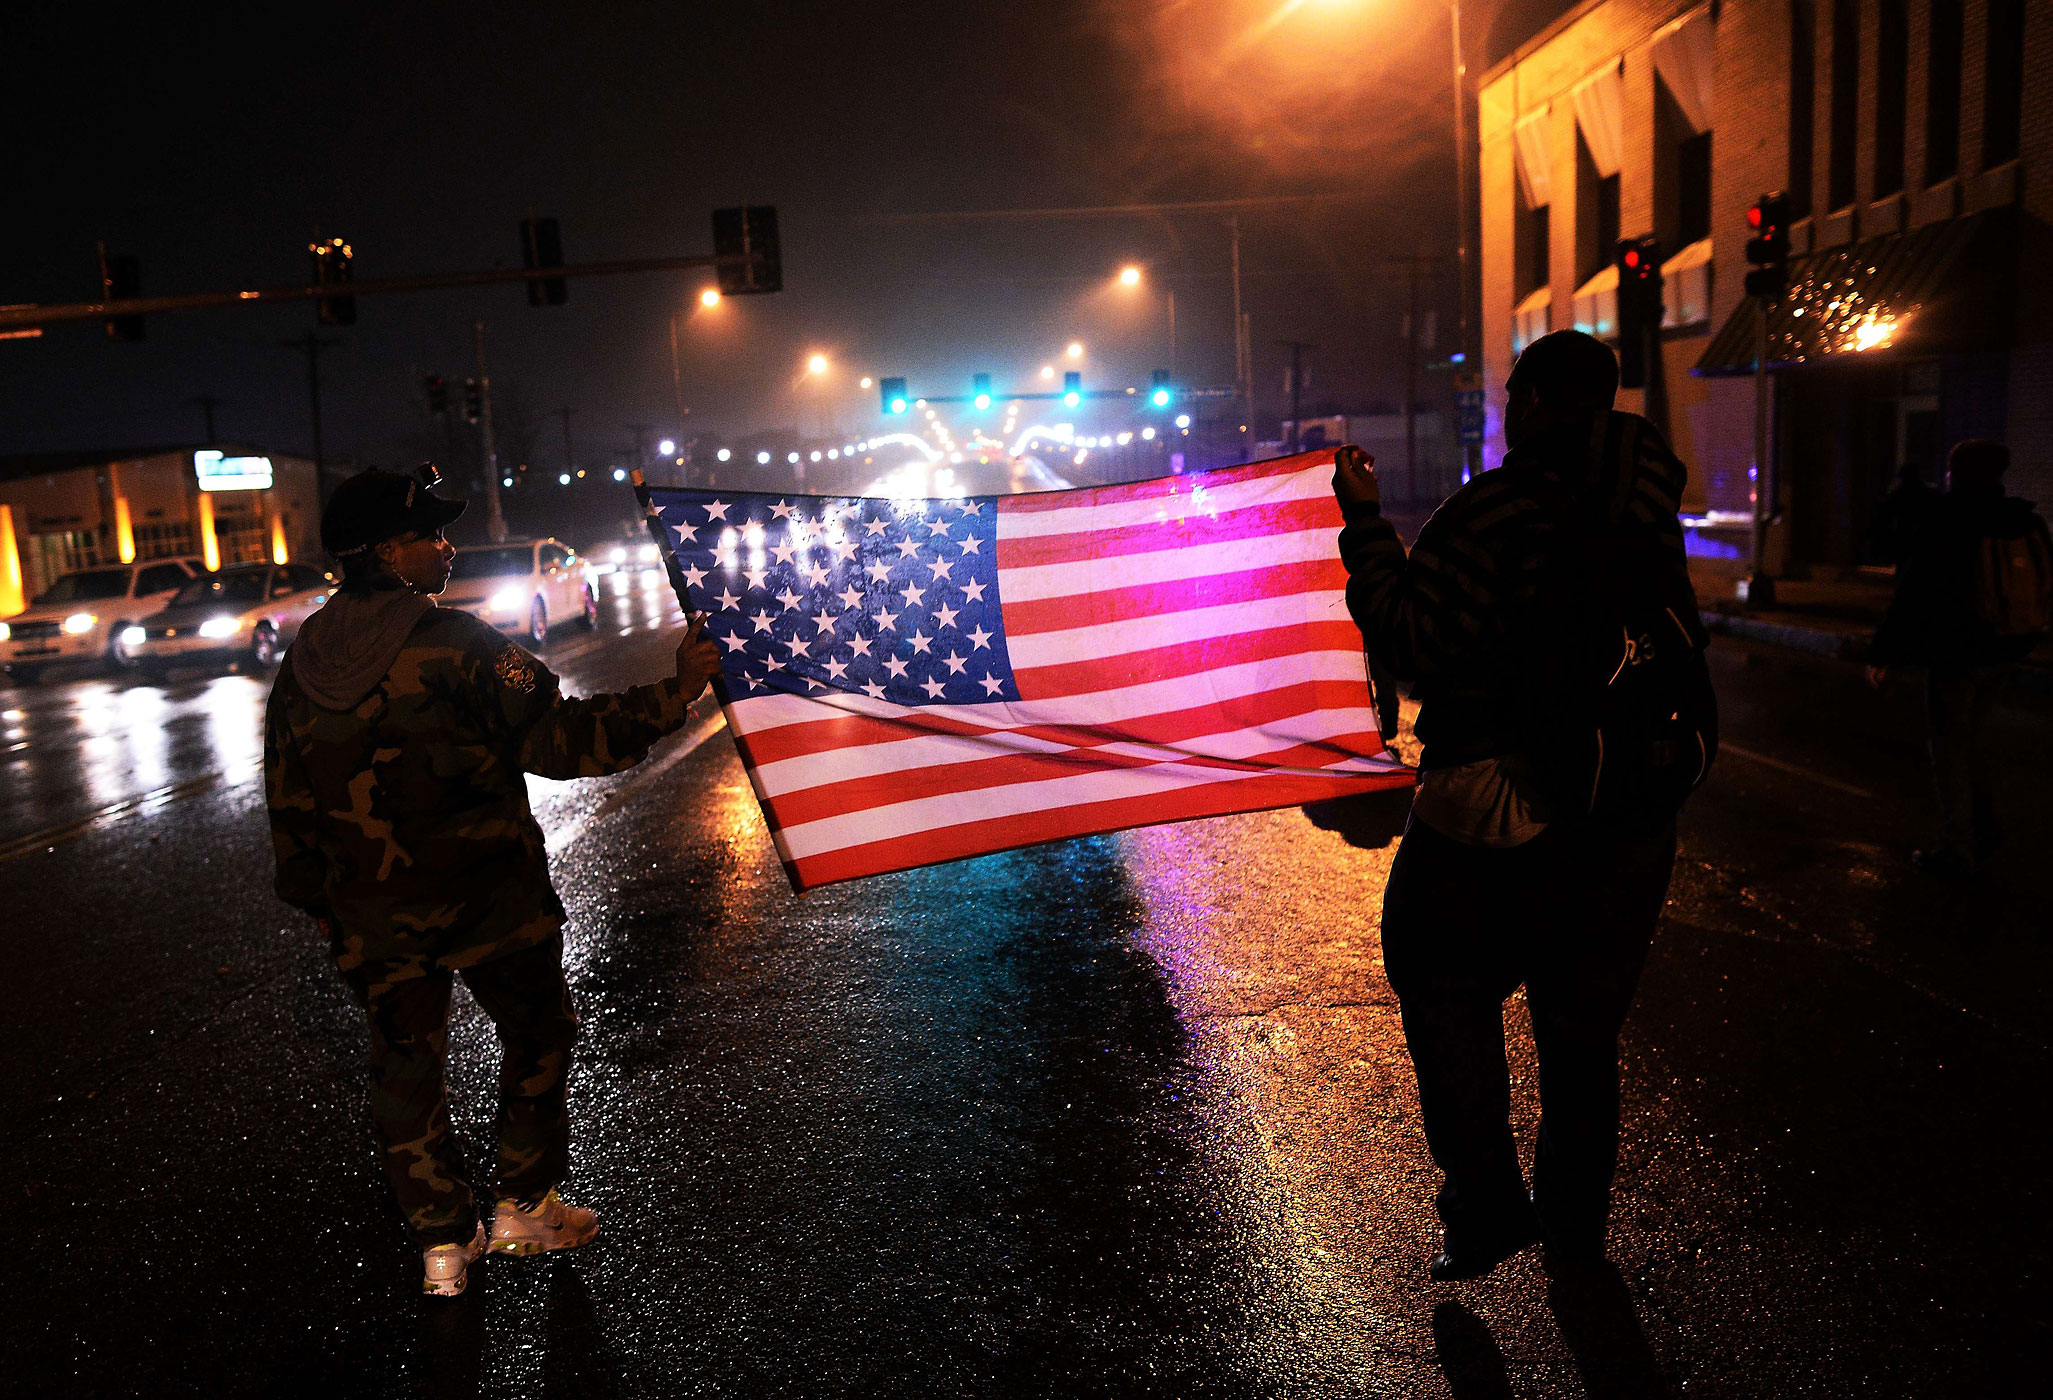 Two demonstrators march with a U.S. flag in St. Louis on Nov. 23, 2014, to protest the death of 18-year-old Michael Brown